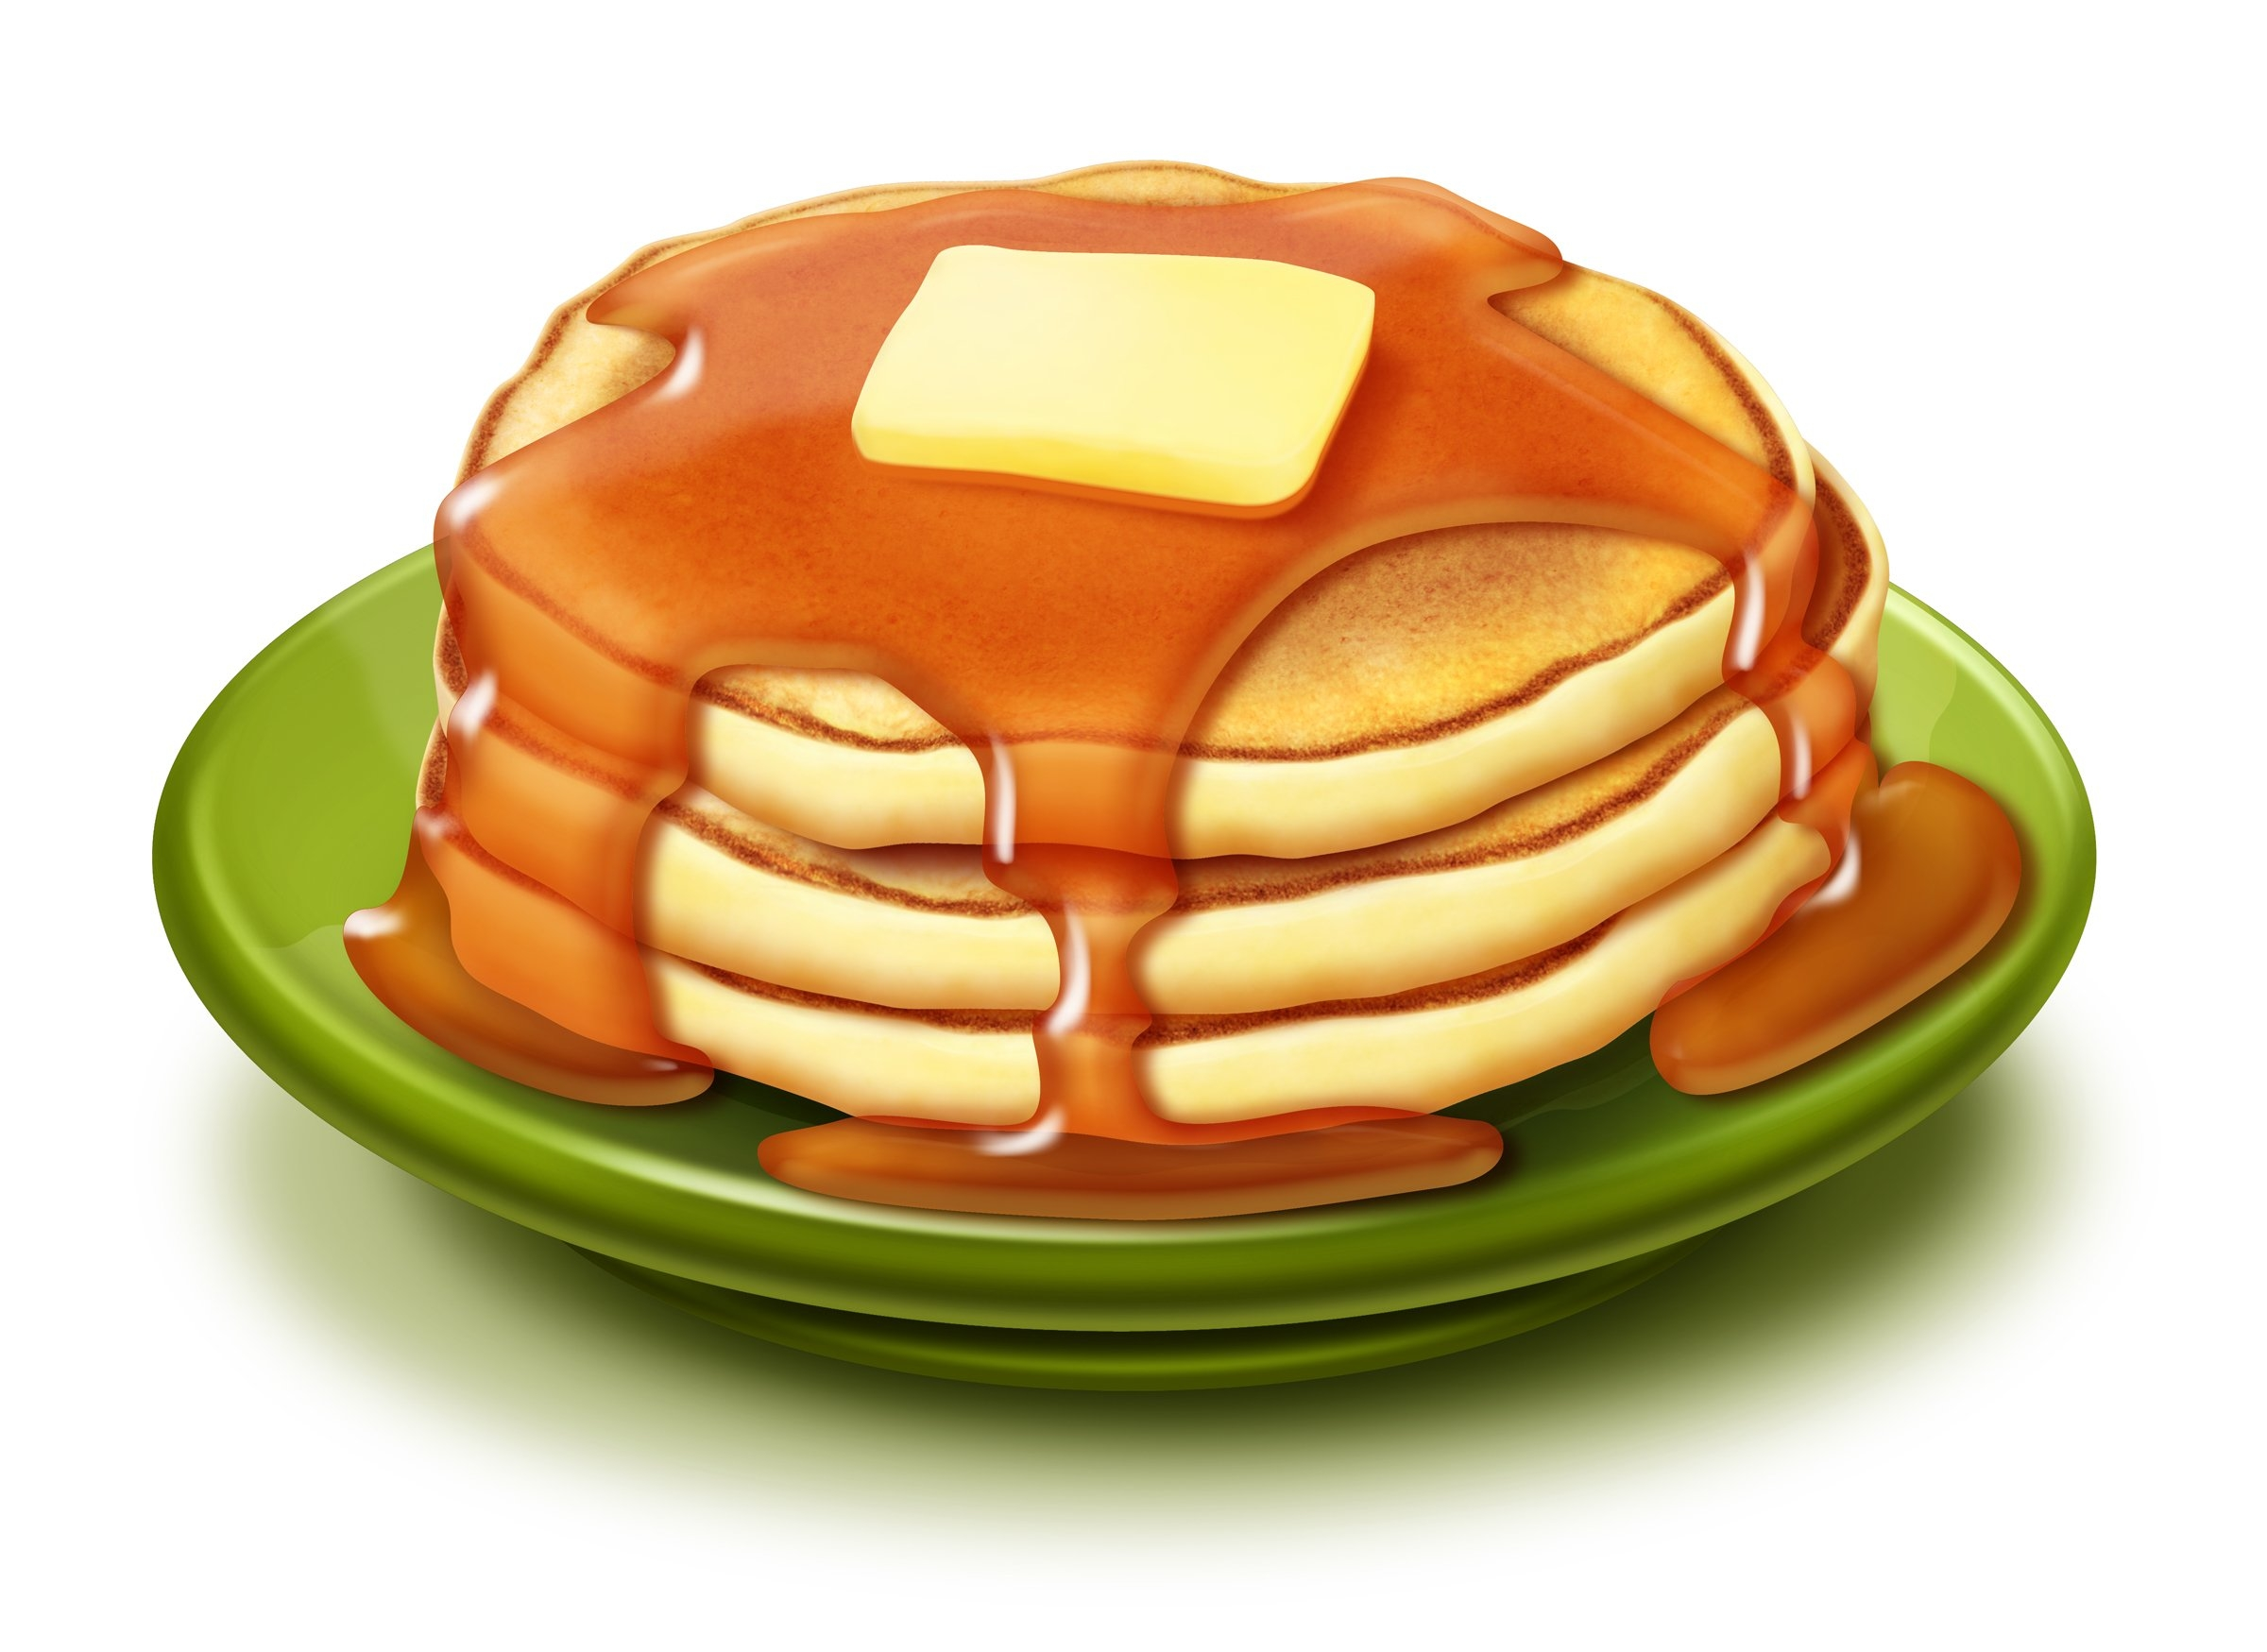 Pancake clipart Inspirational Pancake Clip Art Many Interesting.